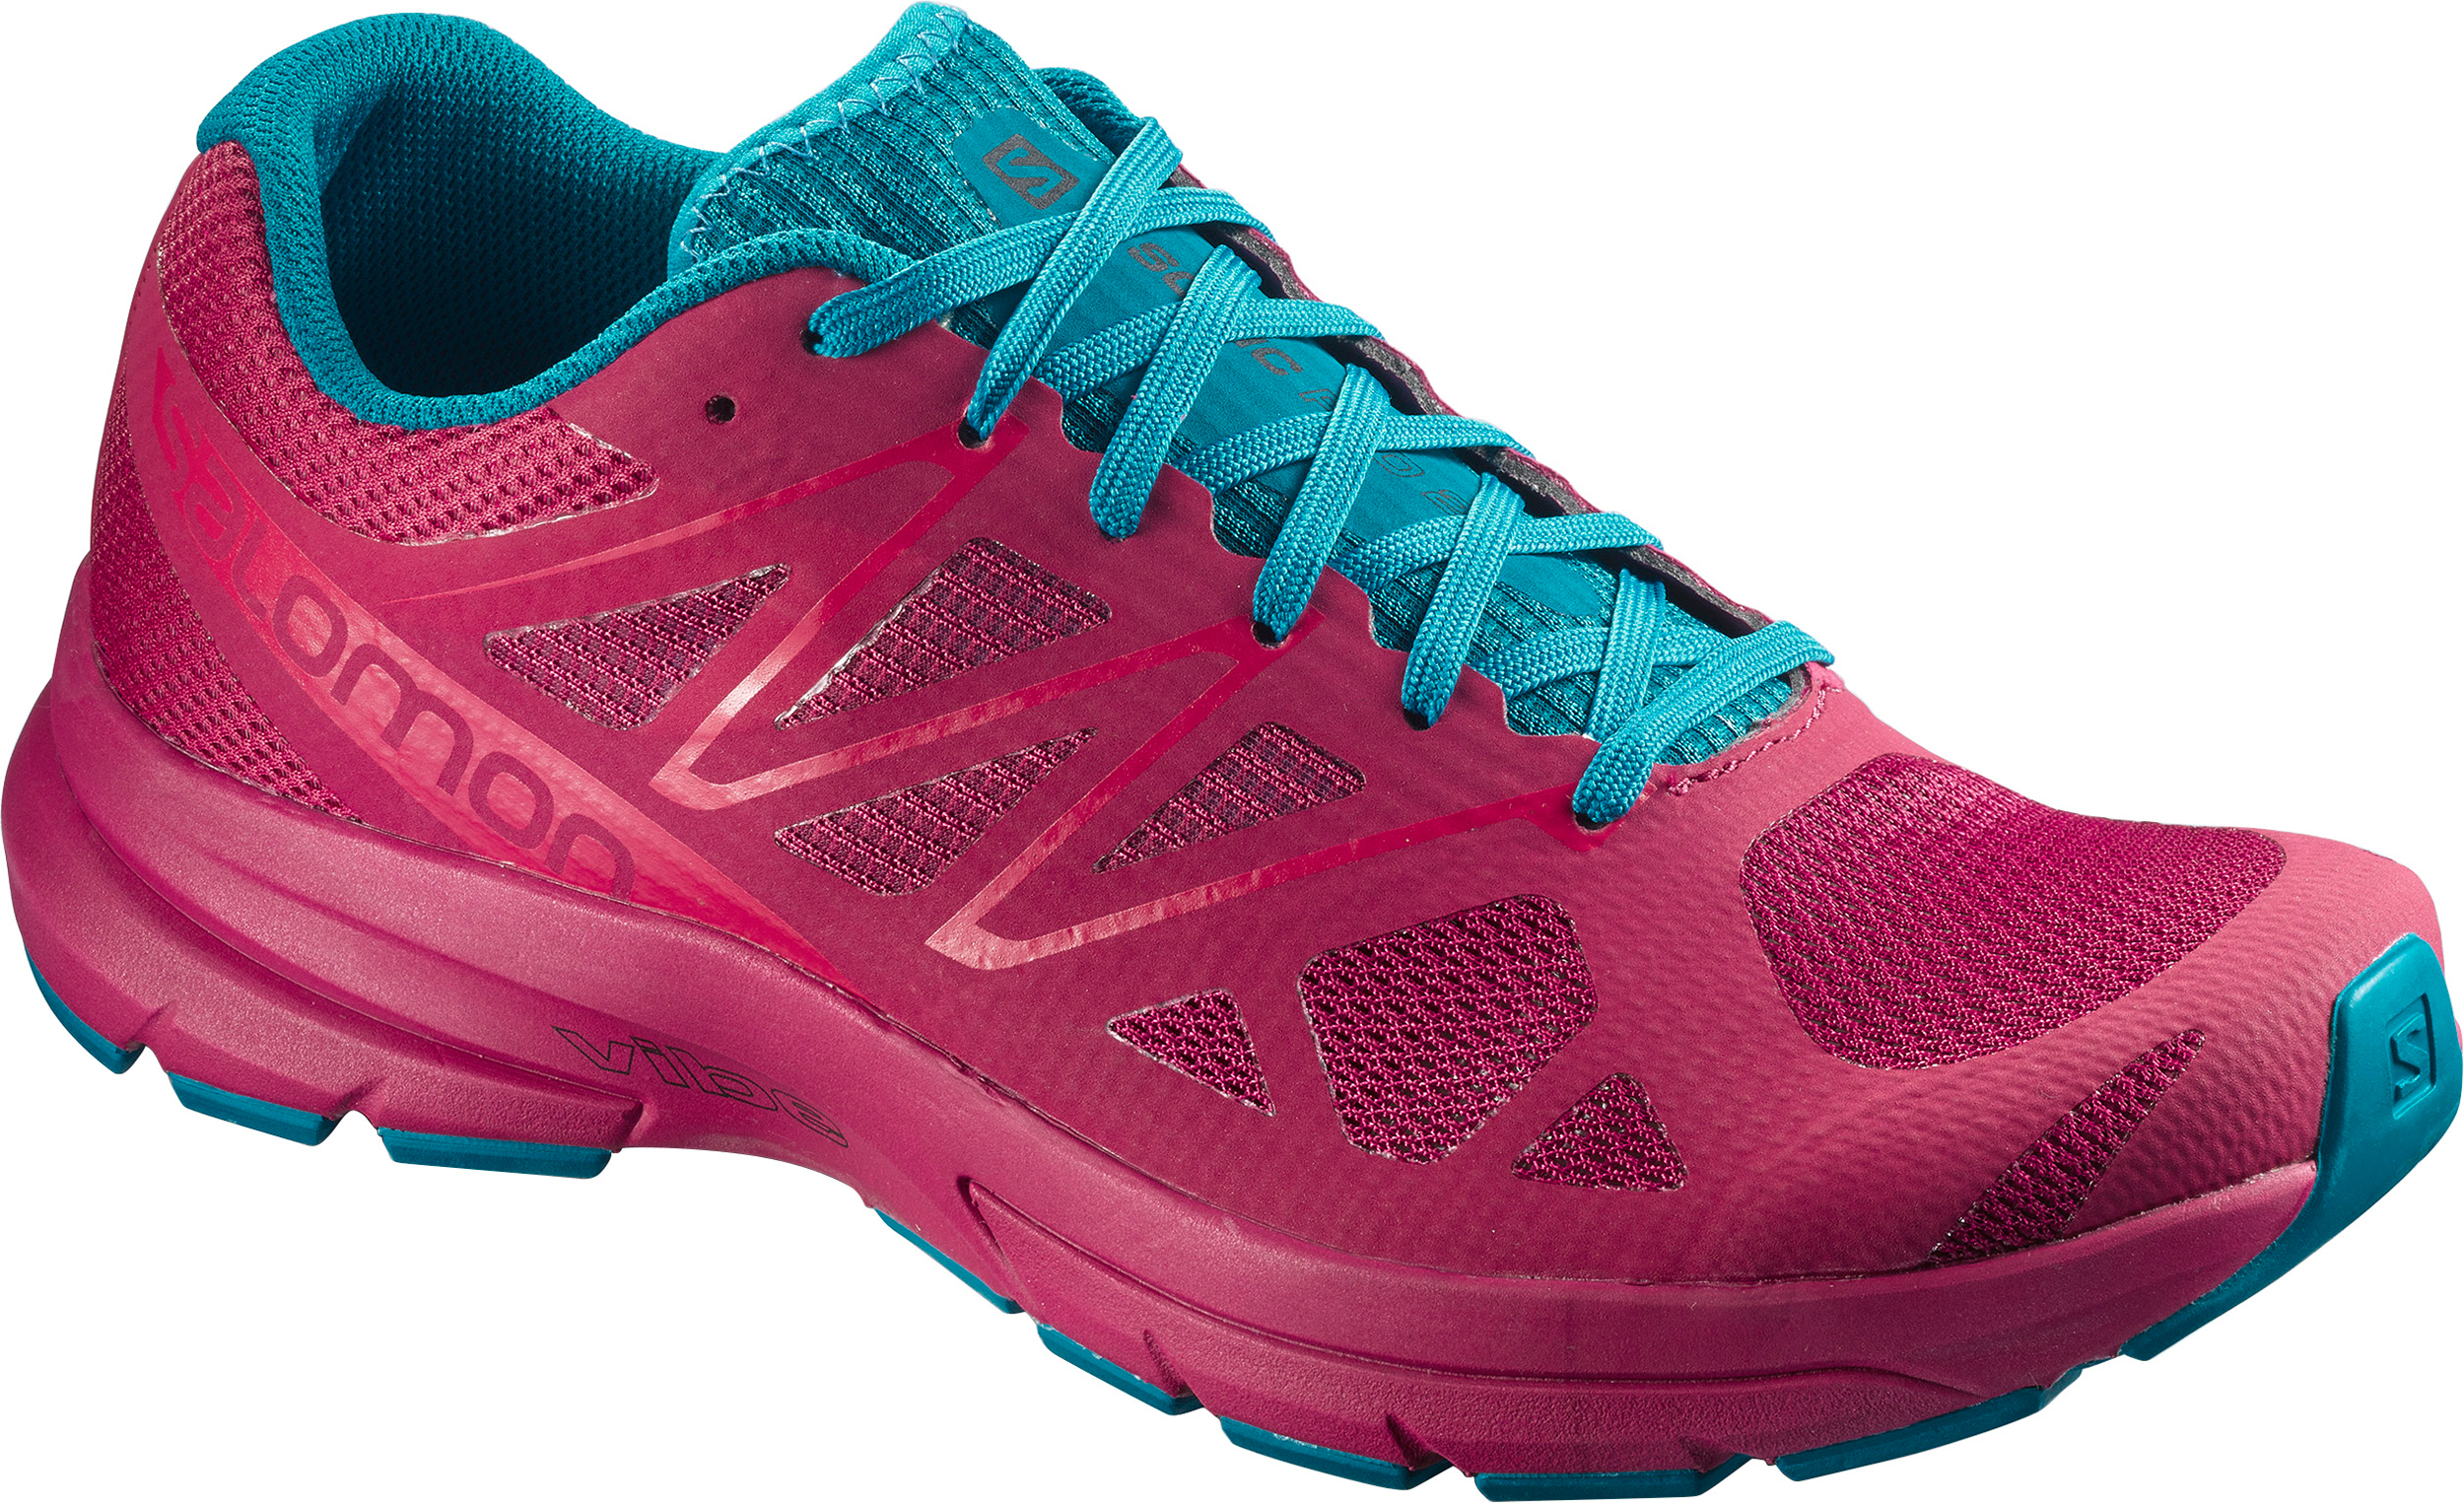 0d5b8cd0ef8 Salomon Sonic Pro 2 Road Running Shoes - Women s